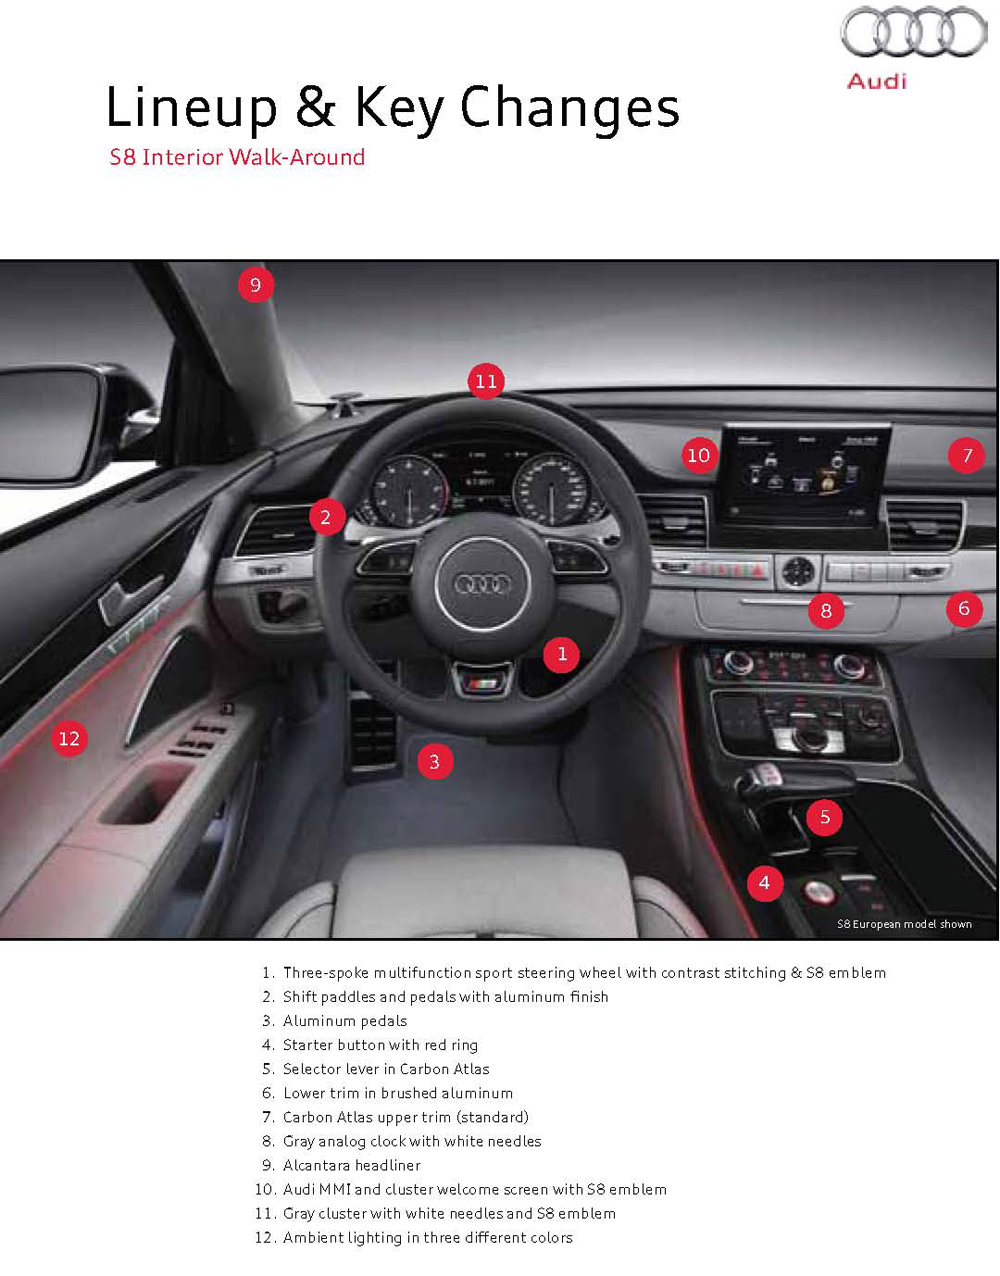 2013 Audi A8 | S8 Specification